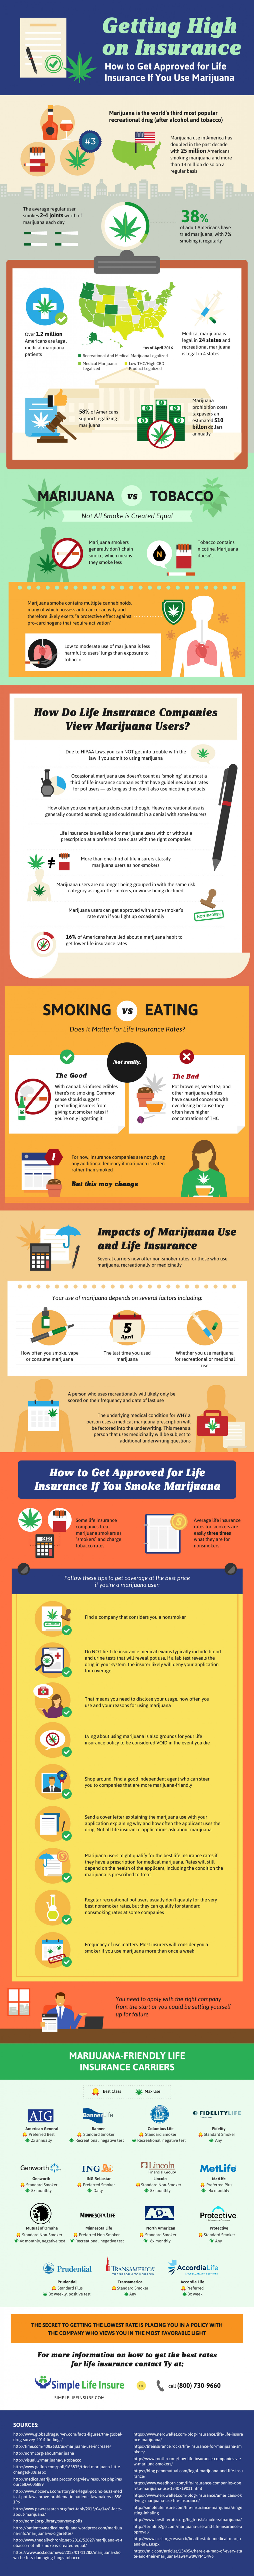 Getting High on Insurance Infographic